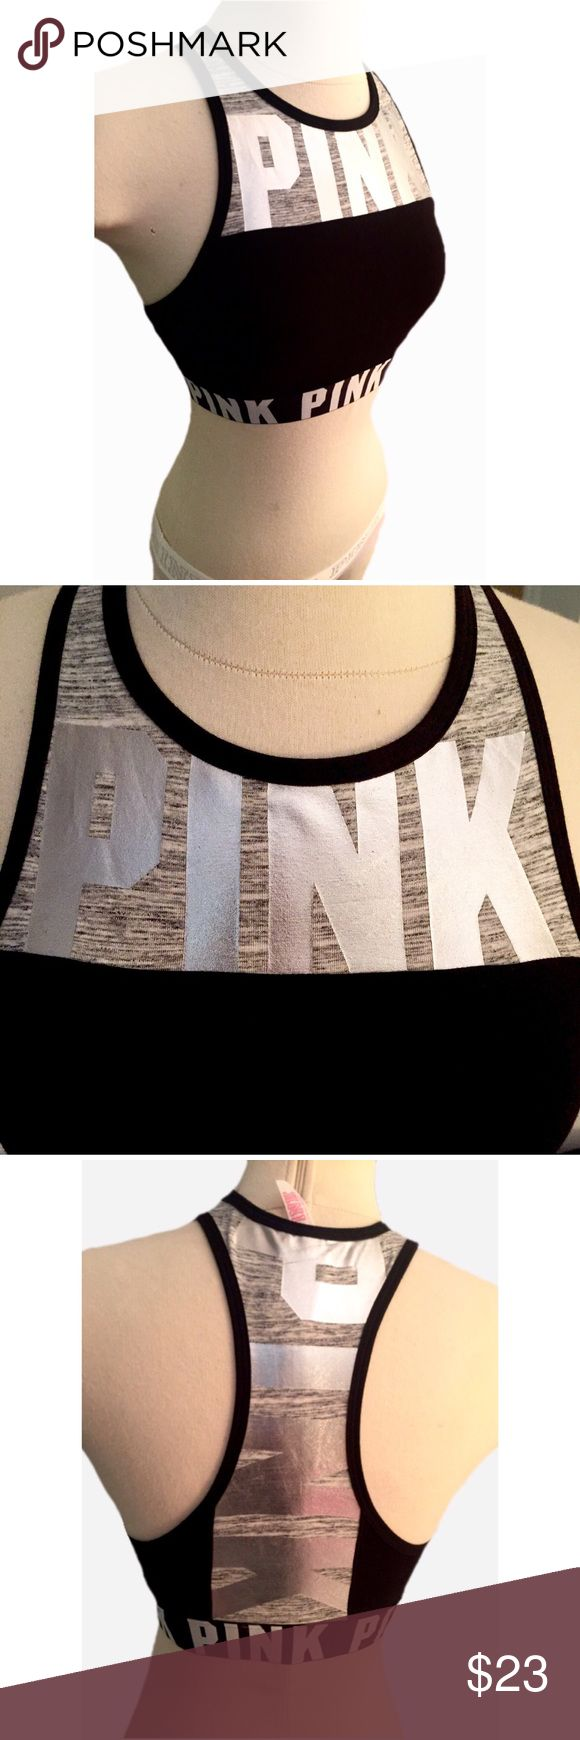 VS pink high neck cotton logo sports bra High neck, cotton, logo band, metallic silver lettering, sports bra, super cute! NEW WITH TAGS!! This bra will fit bra sizes 34AA-B and  32A-C! PINK Victoria's Secret Other